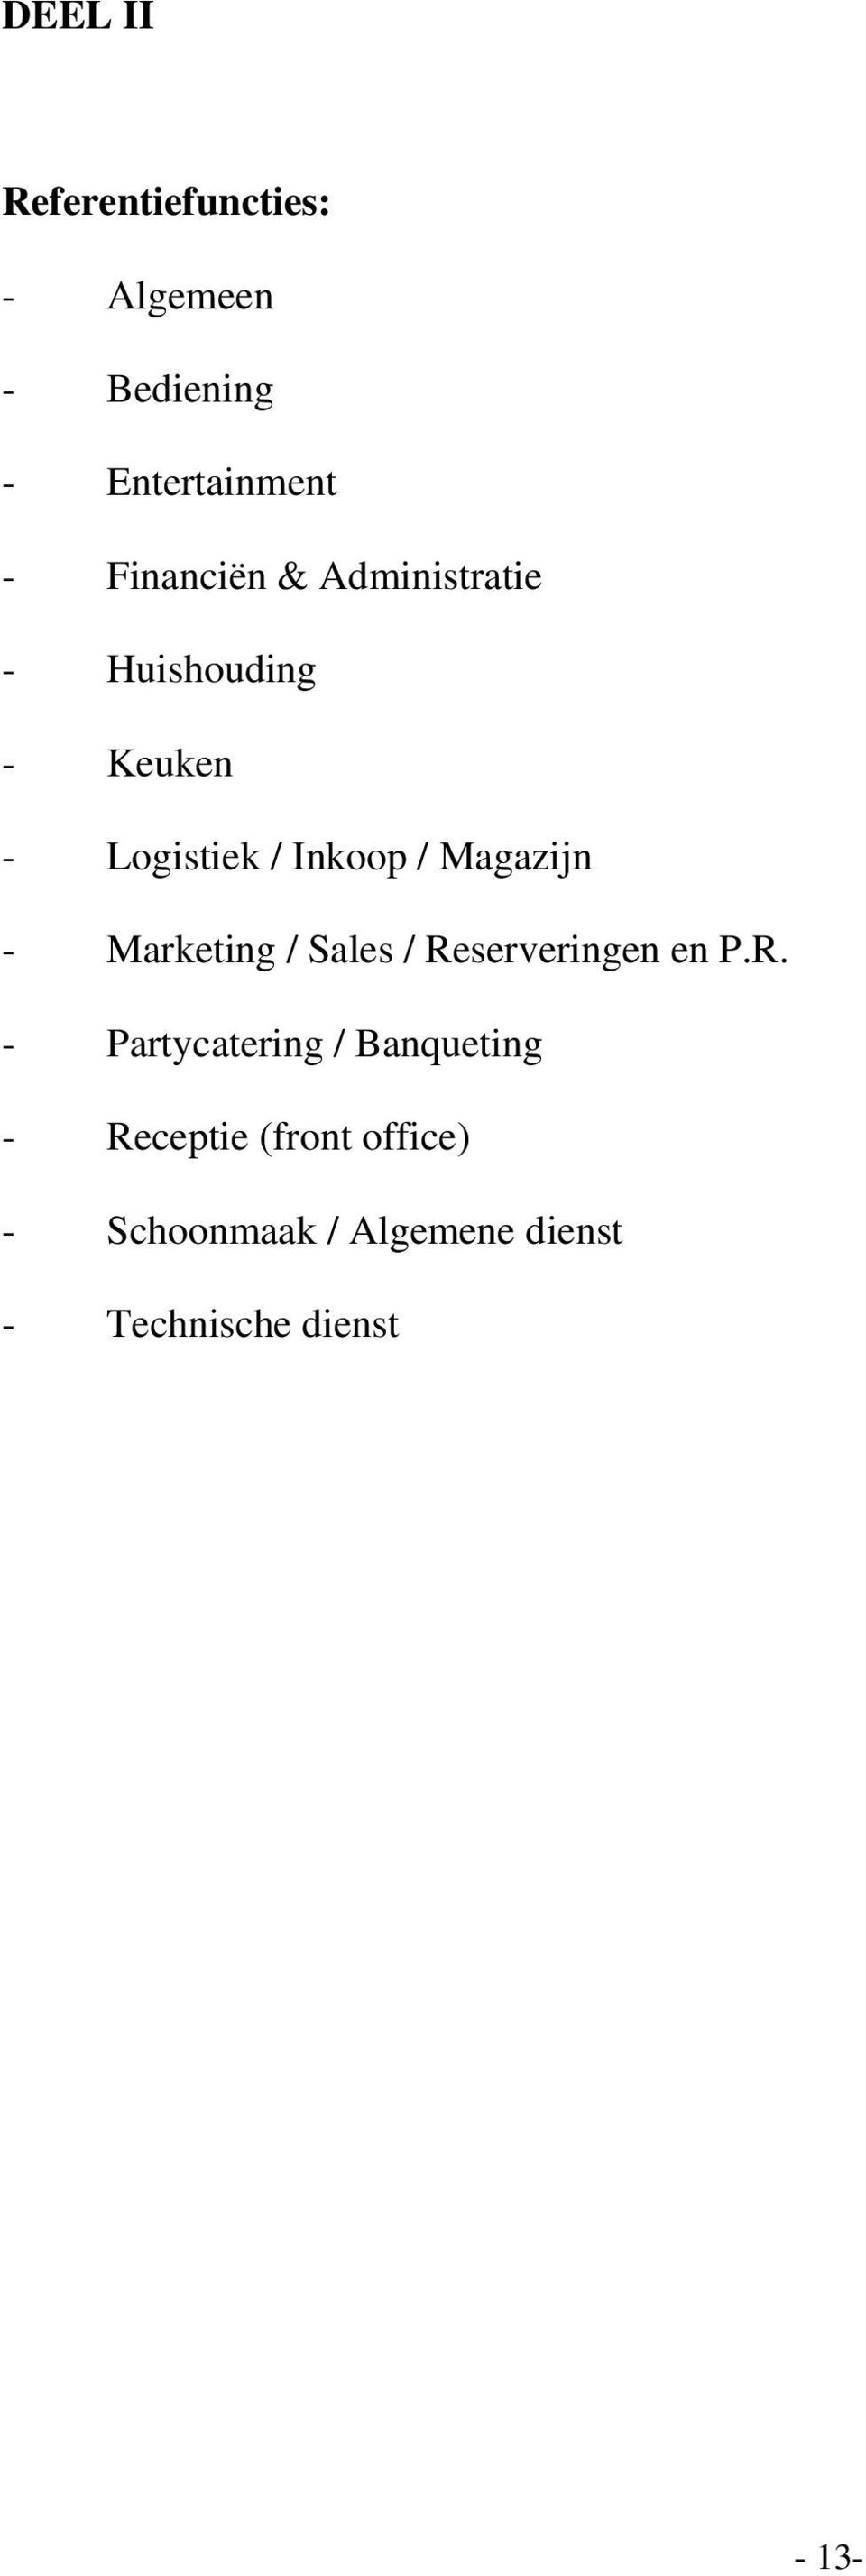 Magazijn - Marketing / Sales / Re